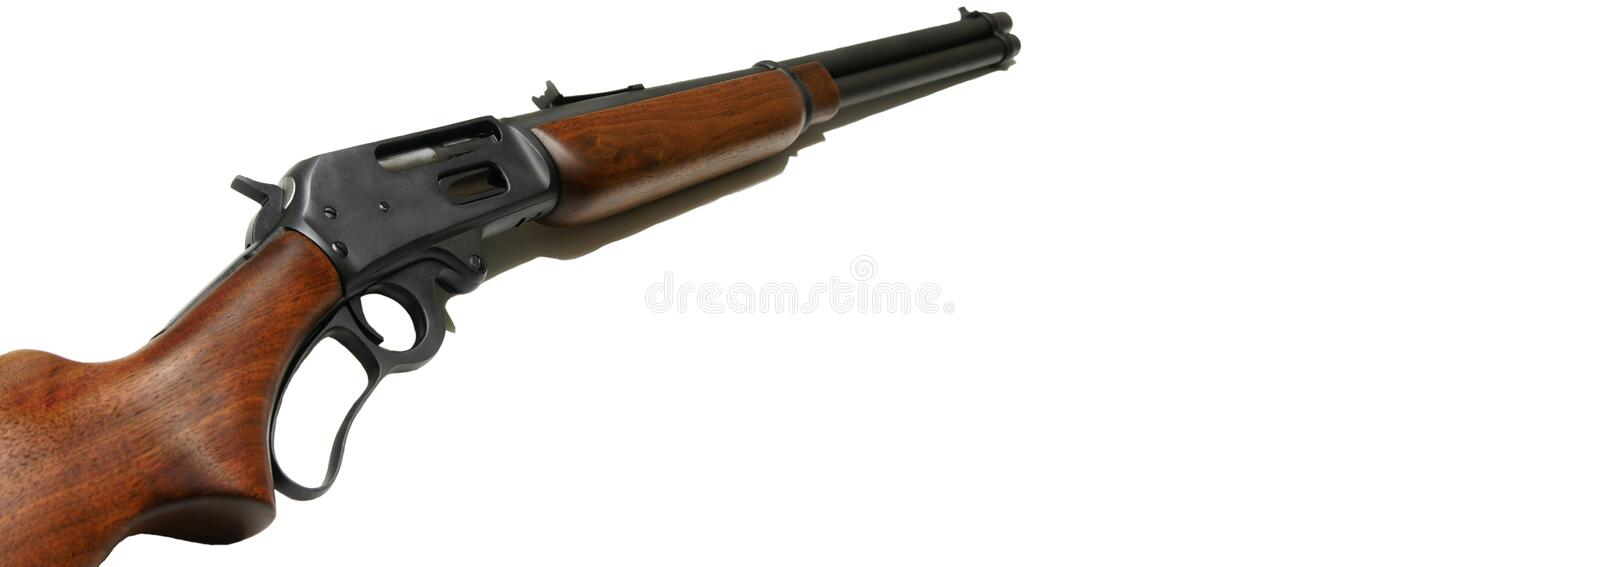 Rifle web banner royalty free stock images